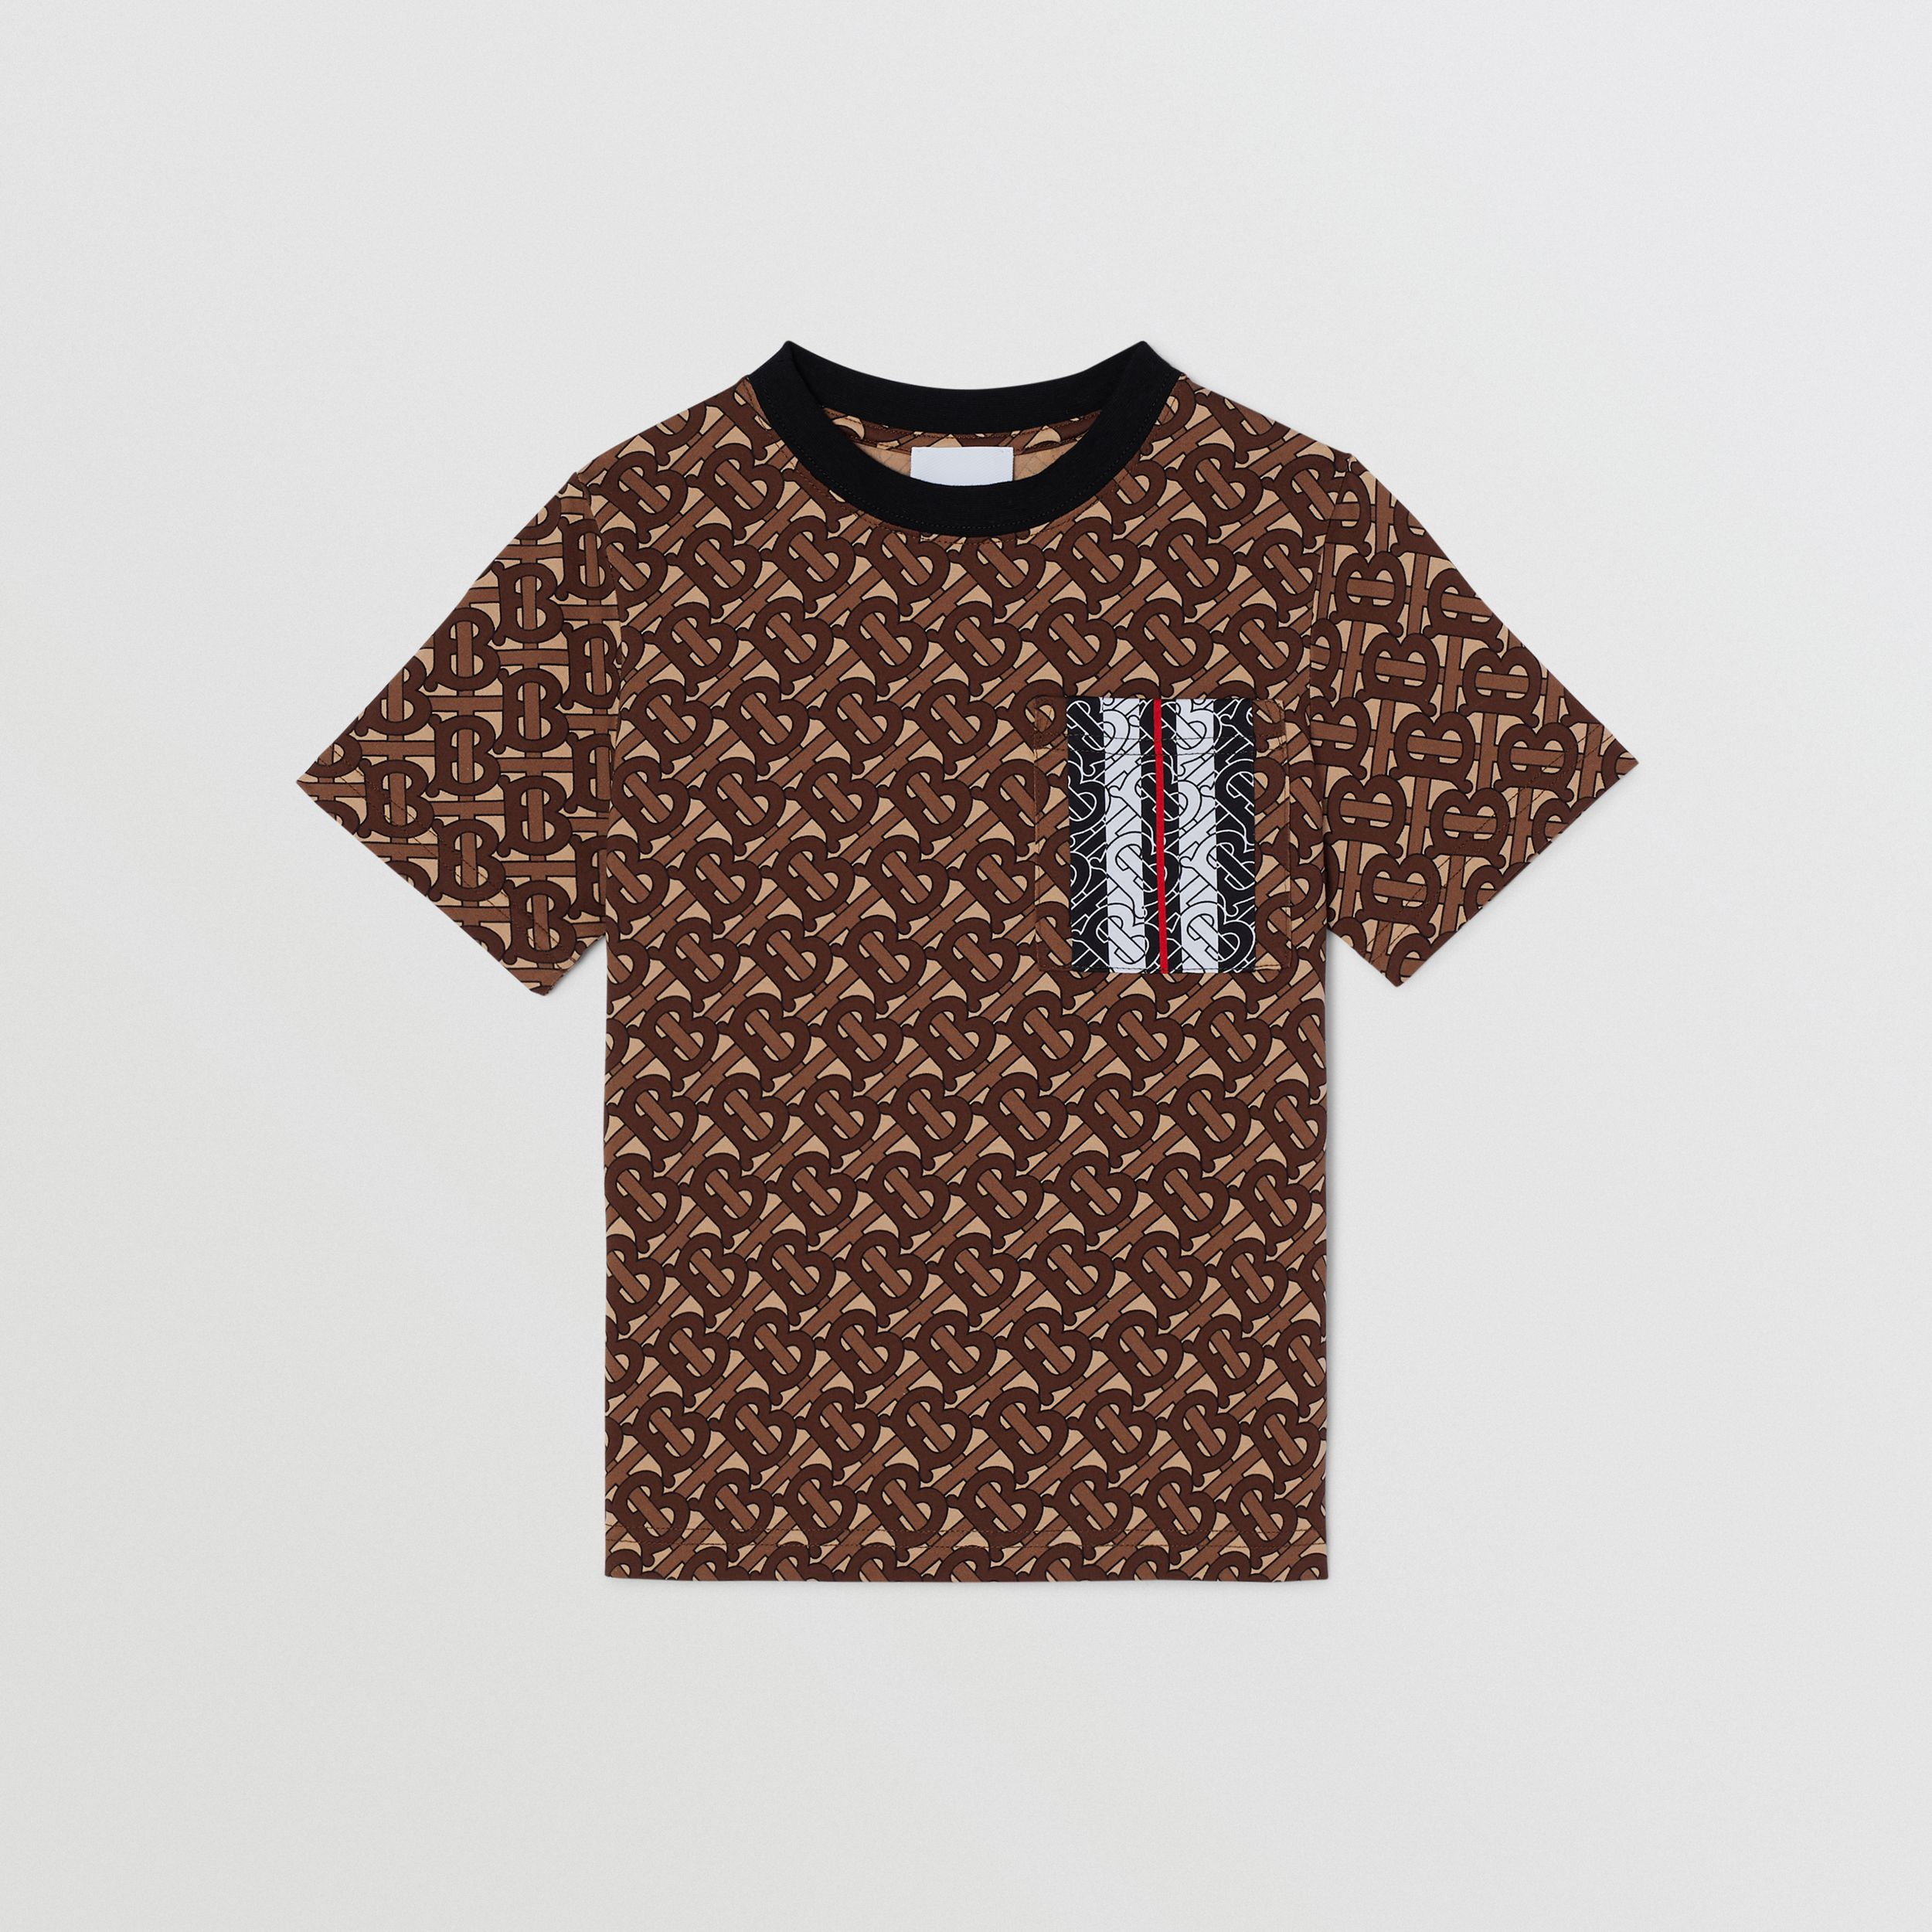 Monogram Stripe Print Cotton T-shirt in Bridle Brown | Burberry - 1